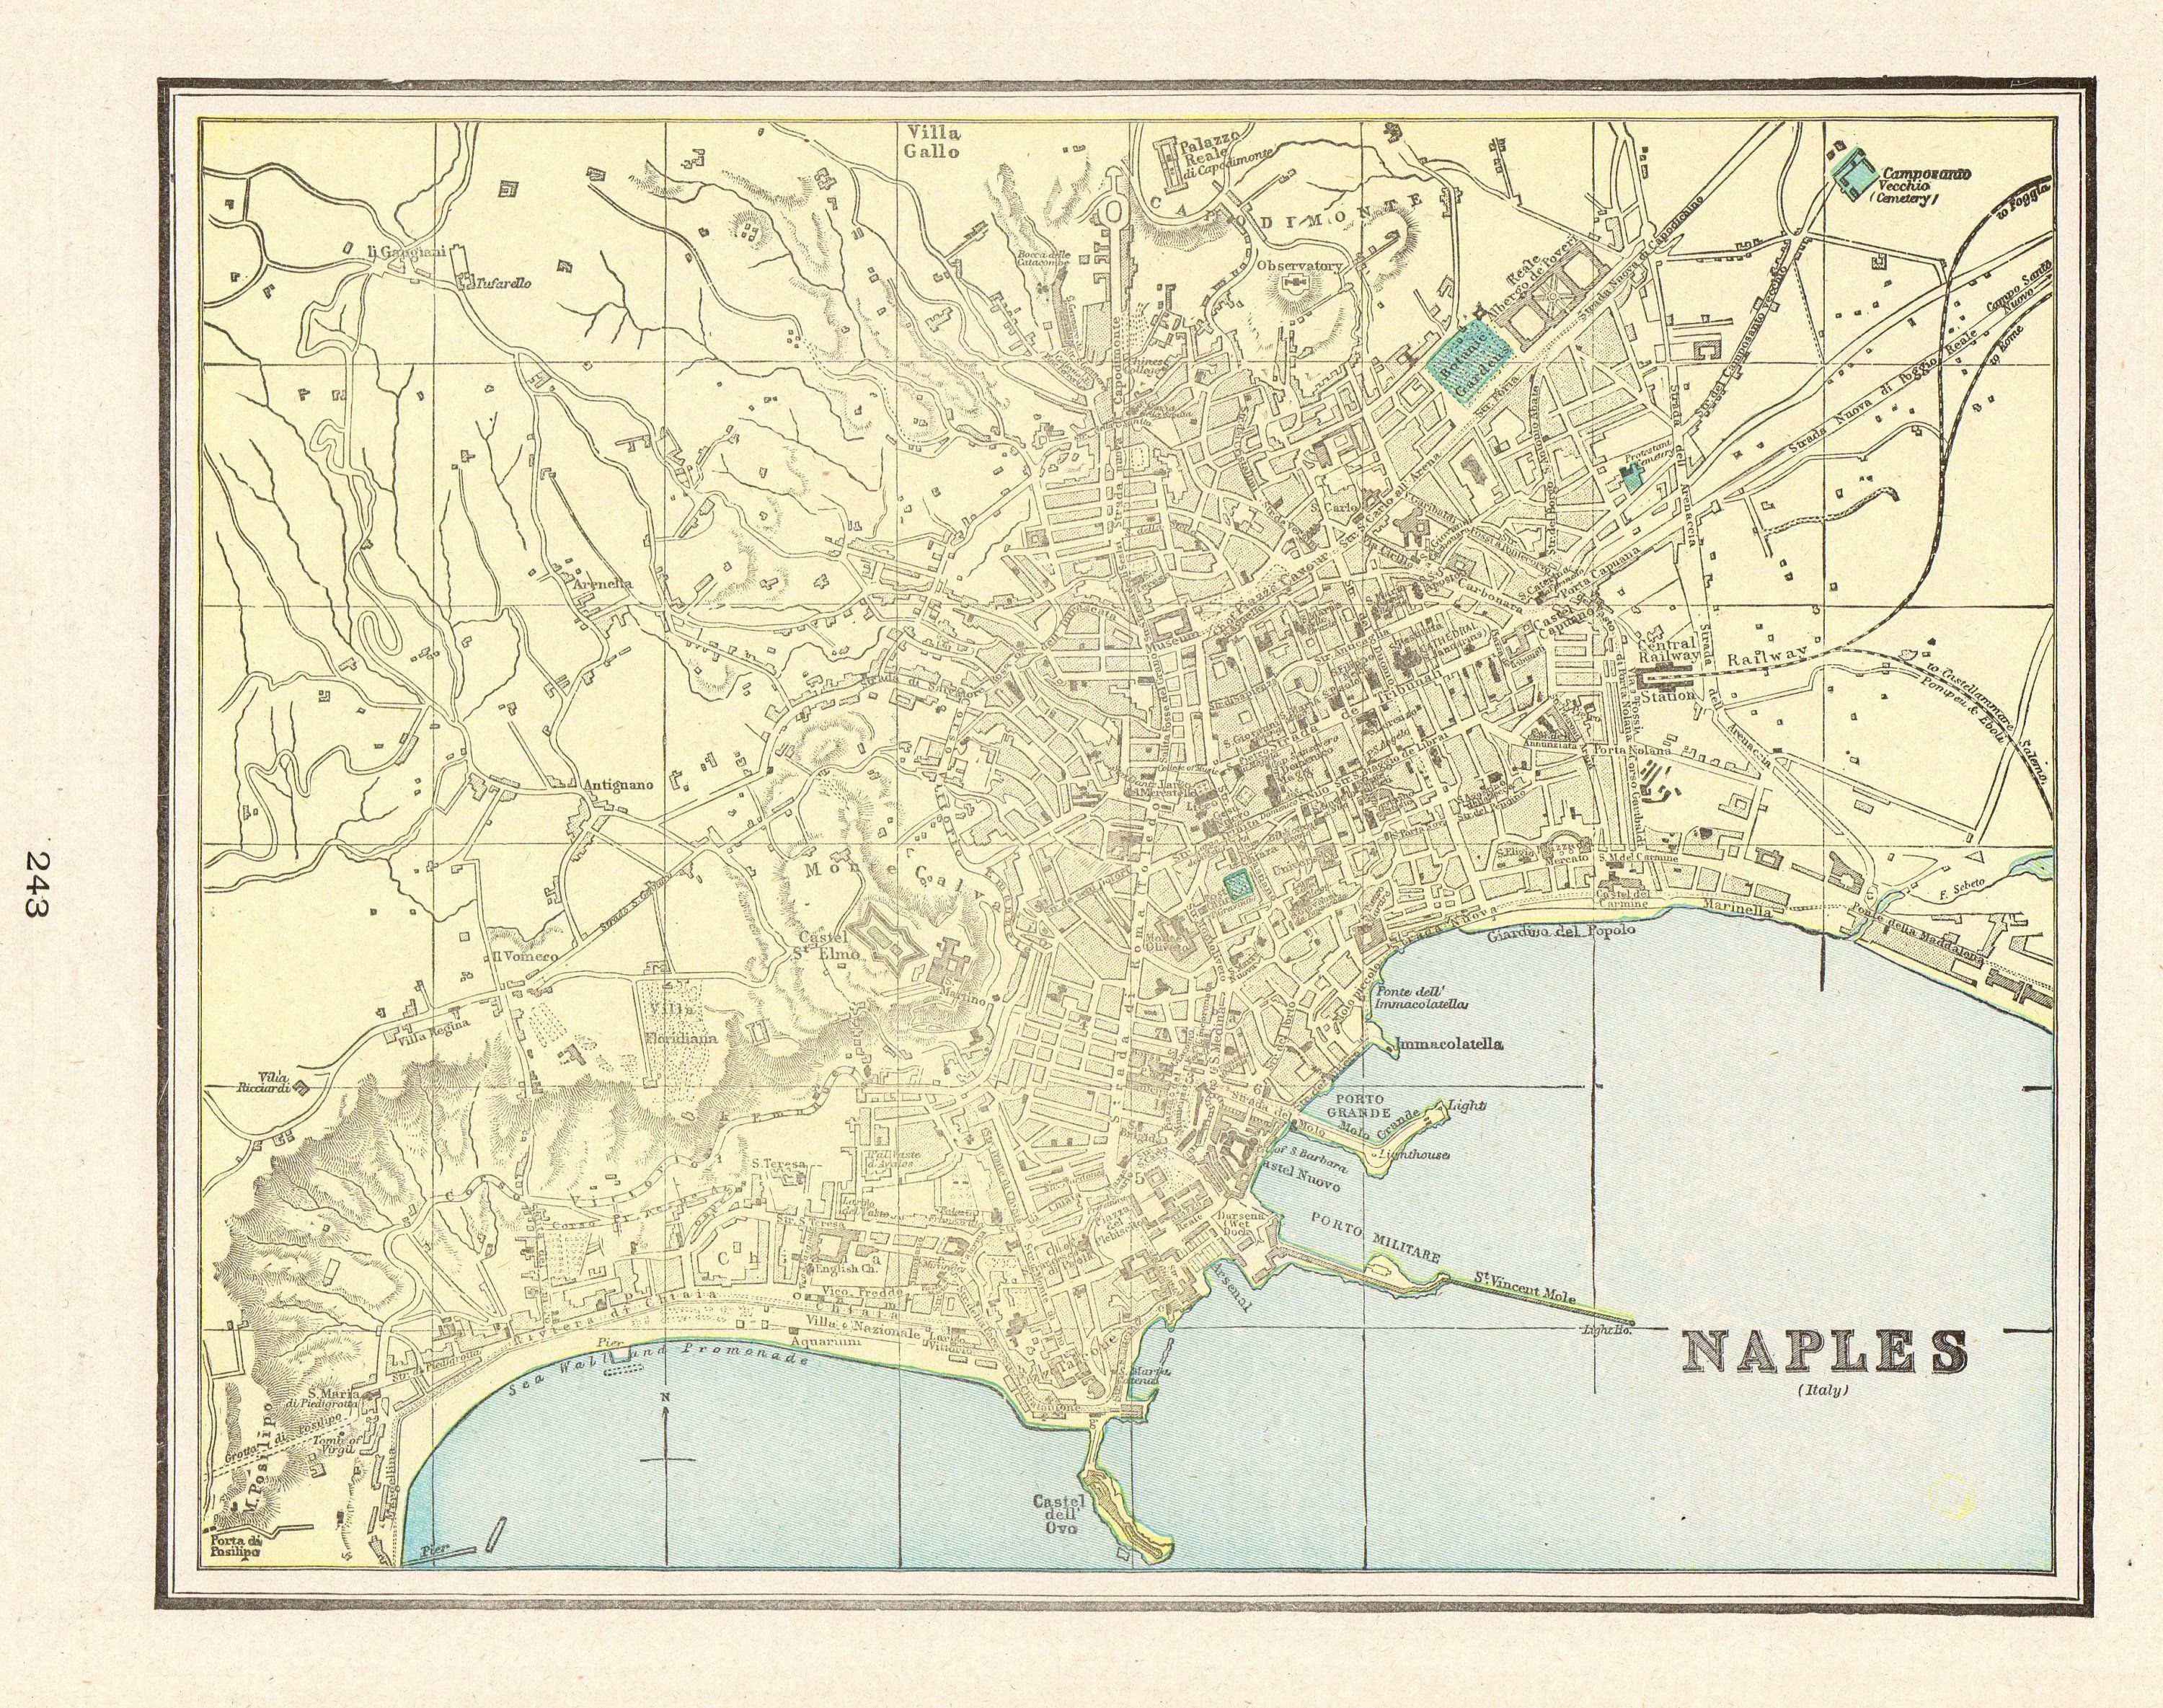 1900 Antique NAPLES Italy Map of Naples Gallery Wall Art ...